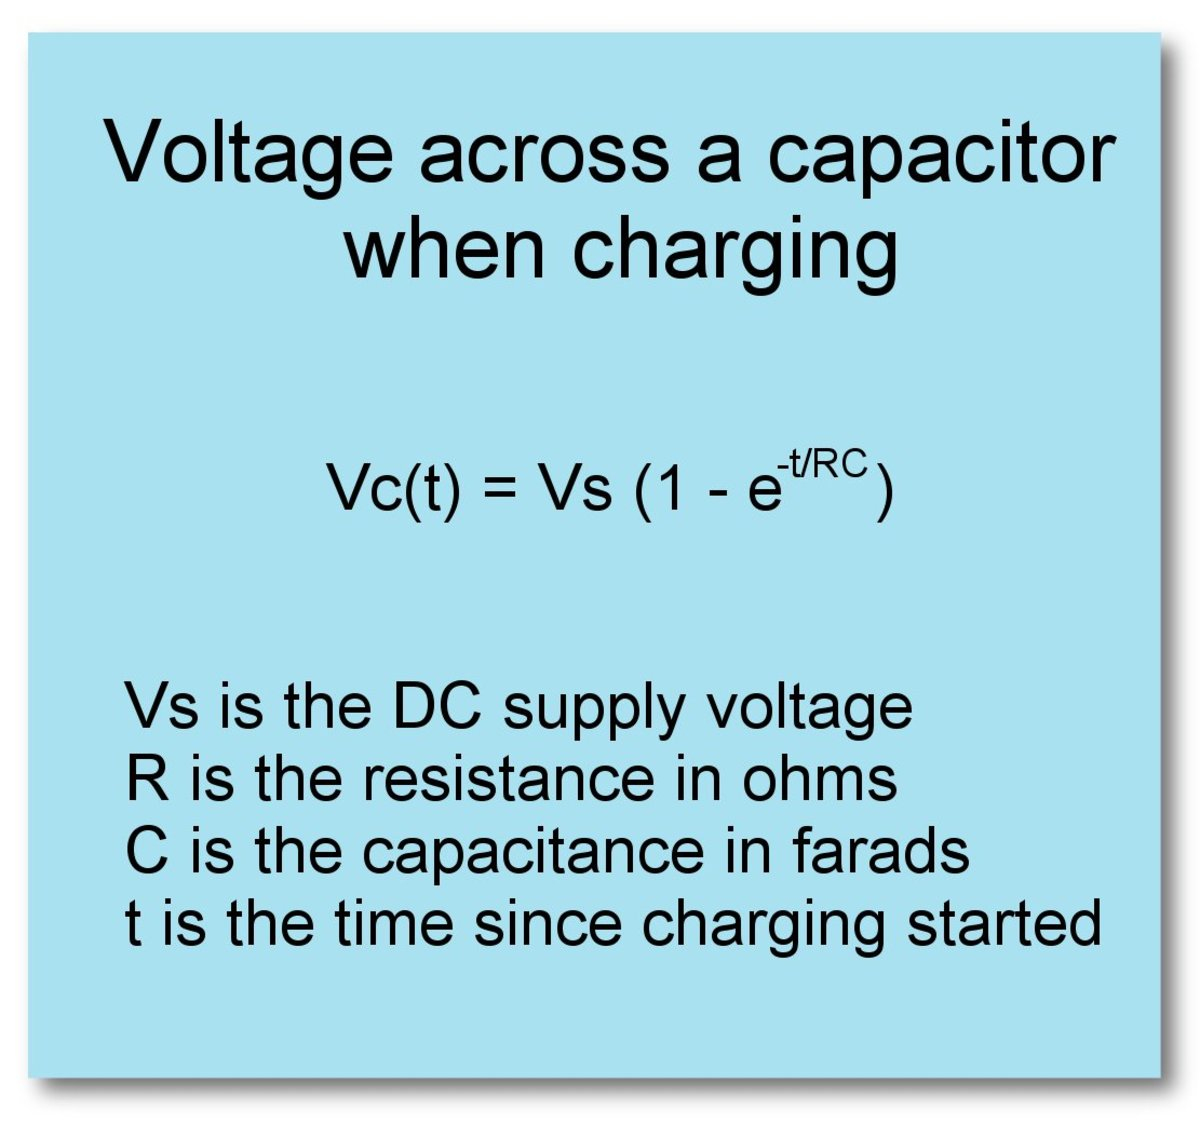 Equation for voltage on a capacitor in an RC circuit as the capacitor charges.